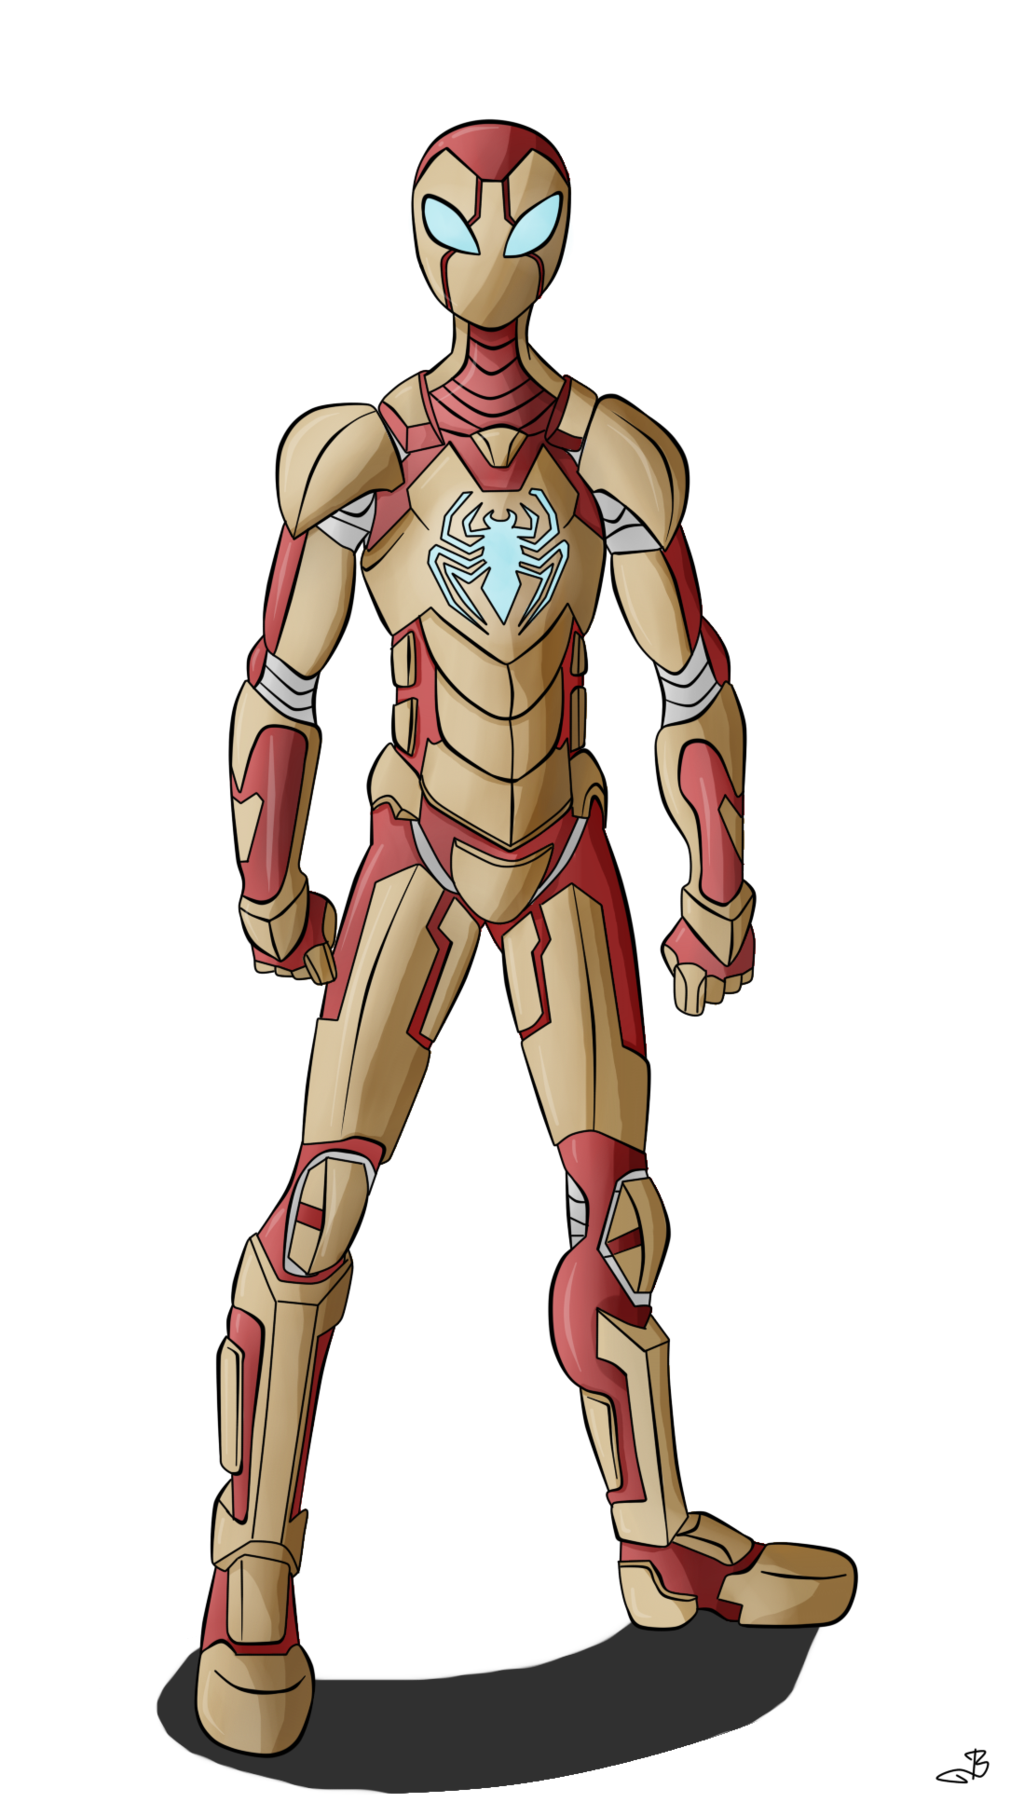 Iron Spiderman Transparent Image PNG Image